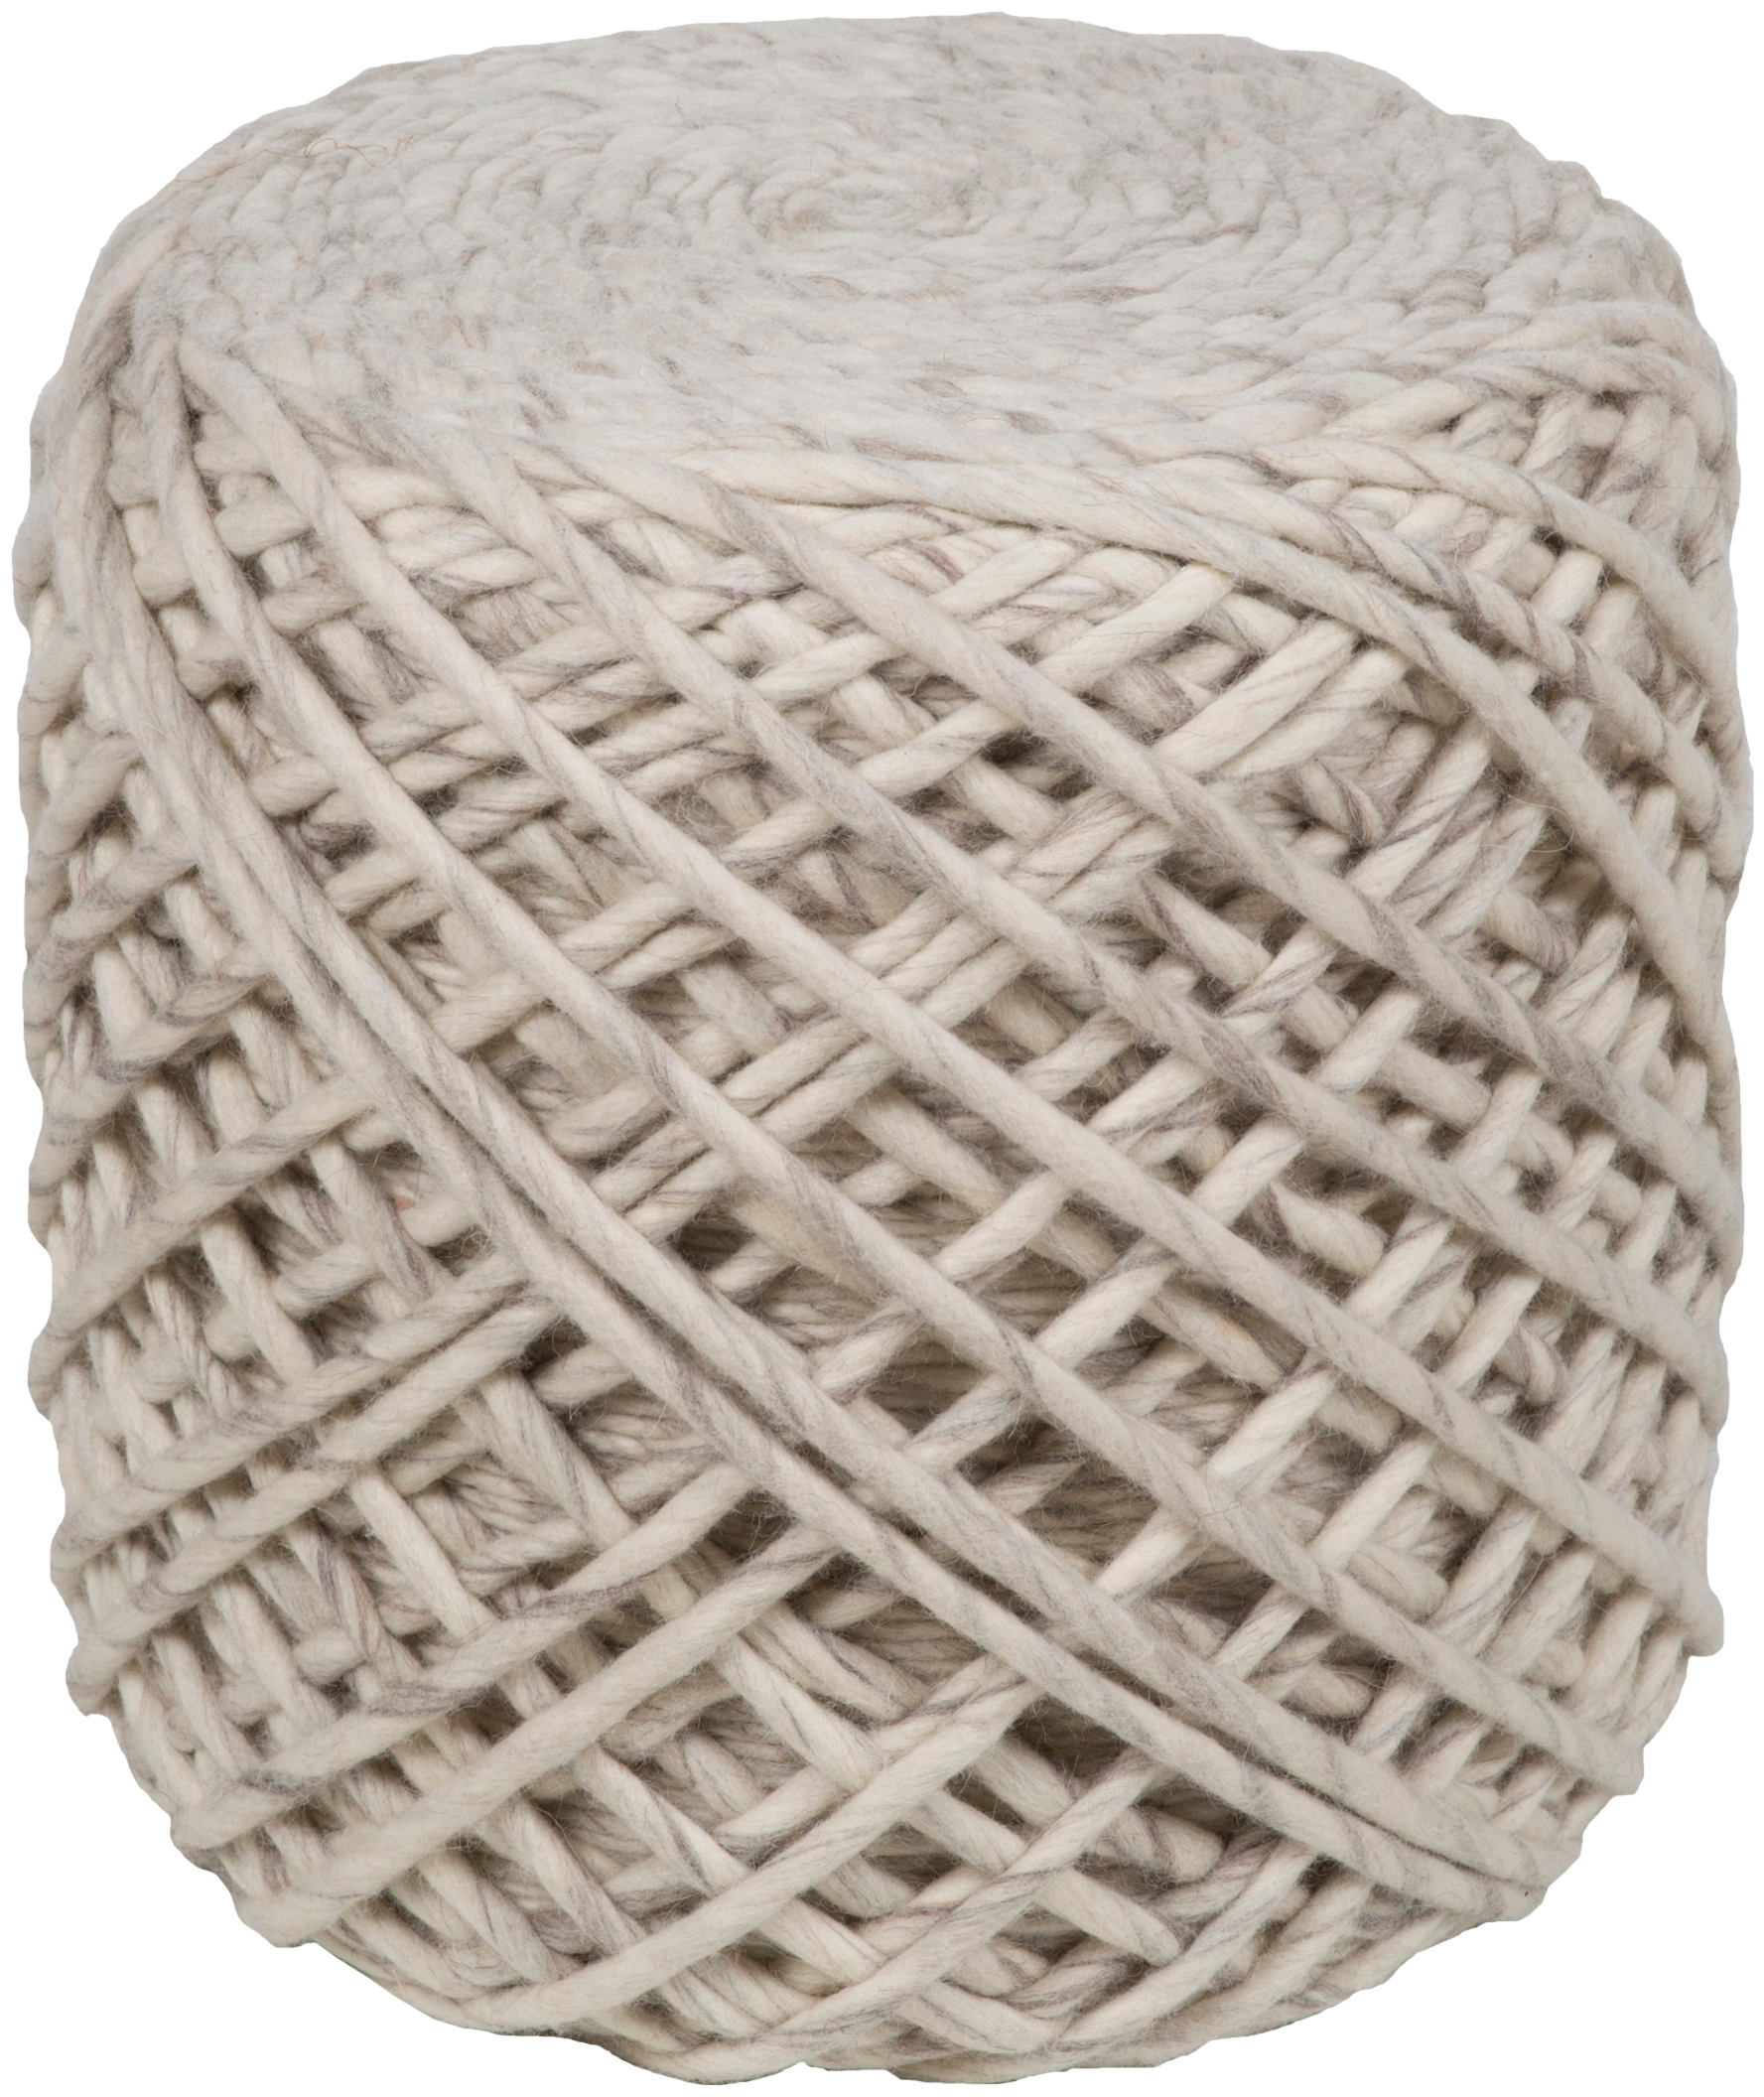 surya yukon cube pouf with cream and charcoal and camel finish ykn001-161618